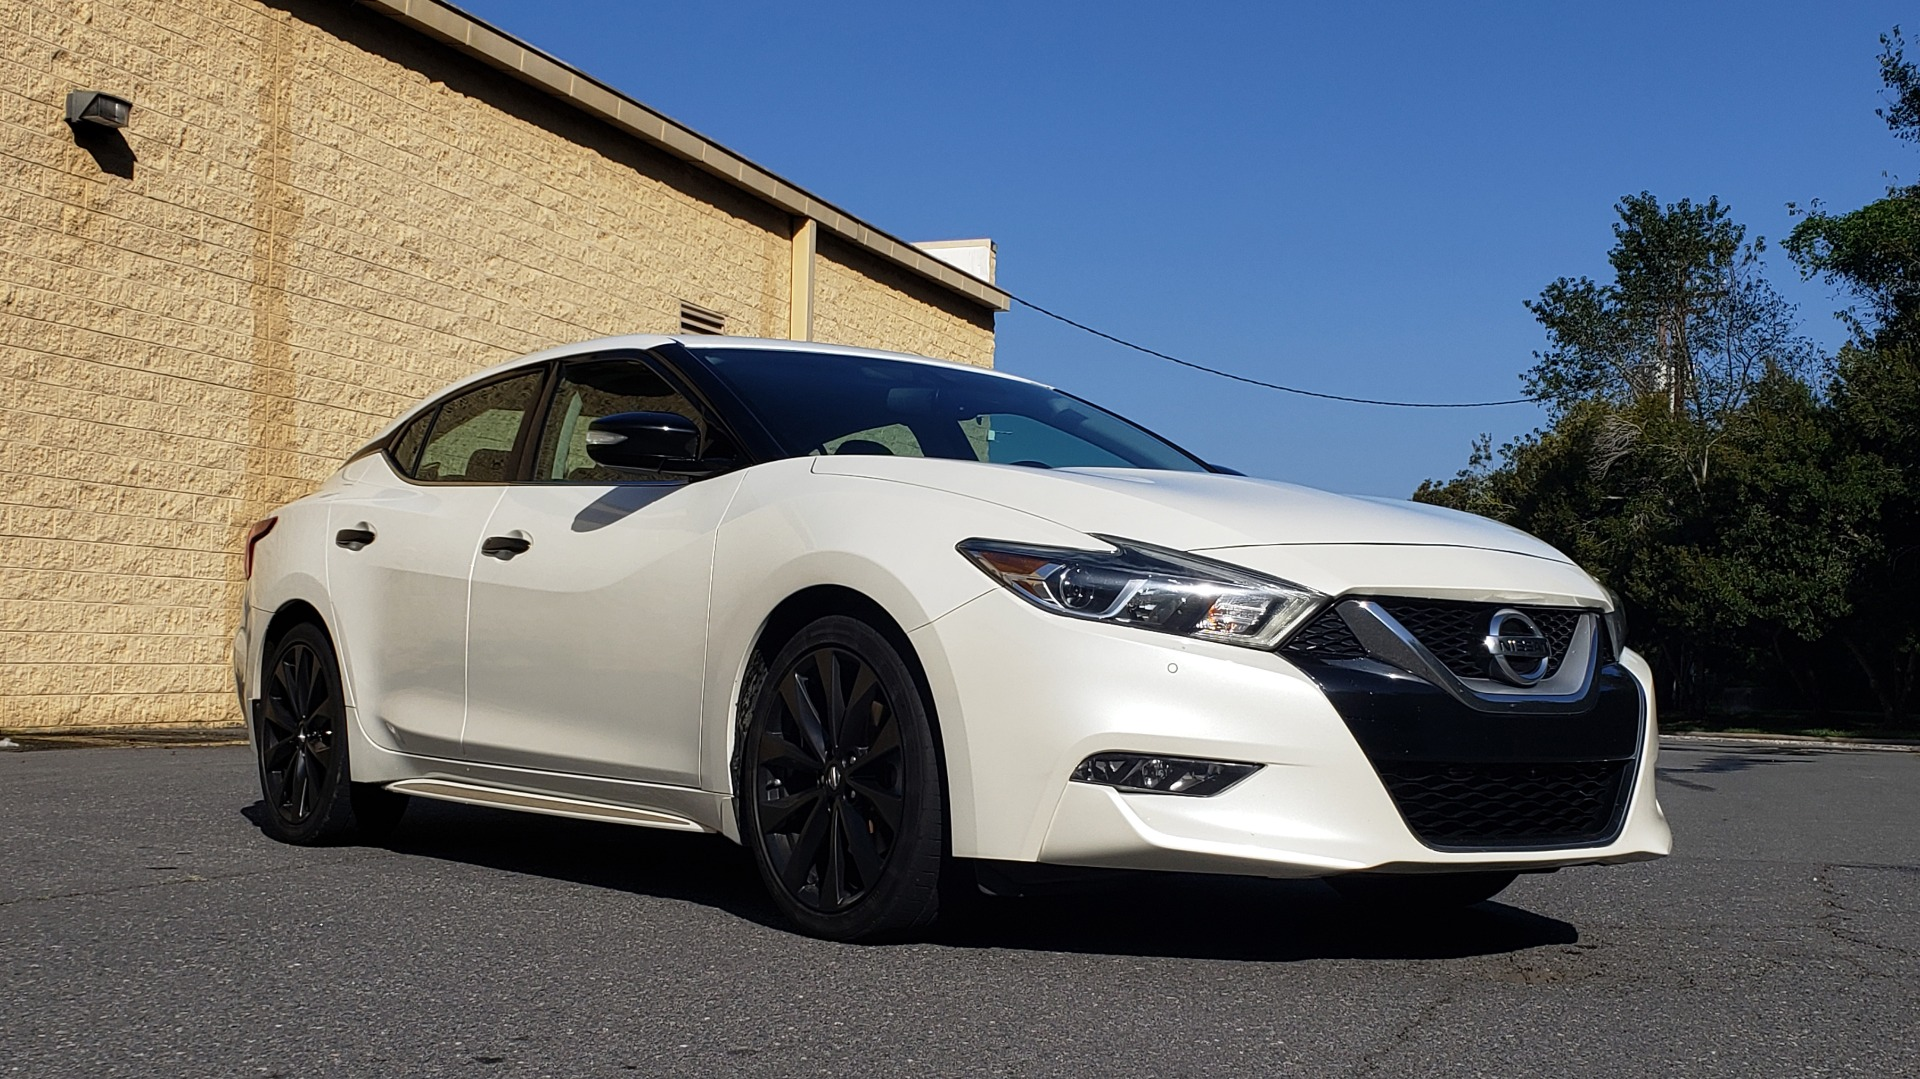 Used 2016 Nissan MAXIMA 3.5 SR / NAV / BOSE / VENT STS / CVT / REARVIEW for sale Sold at Formula Imports in Charlotte NC 28227 12